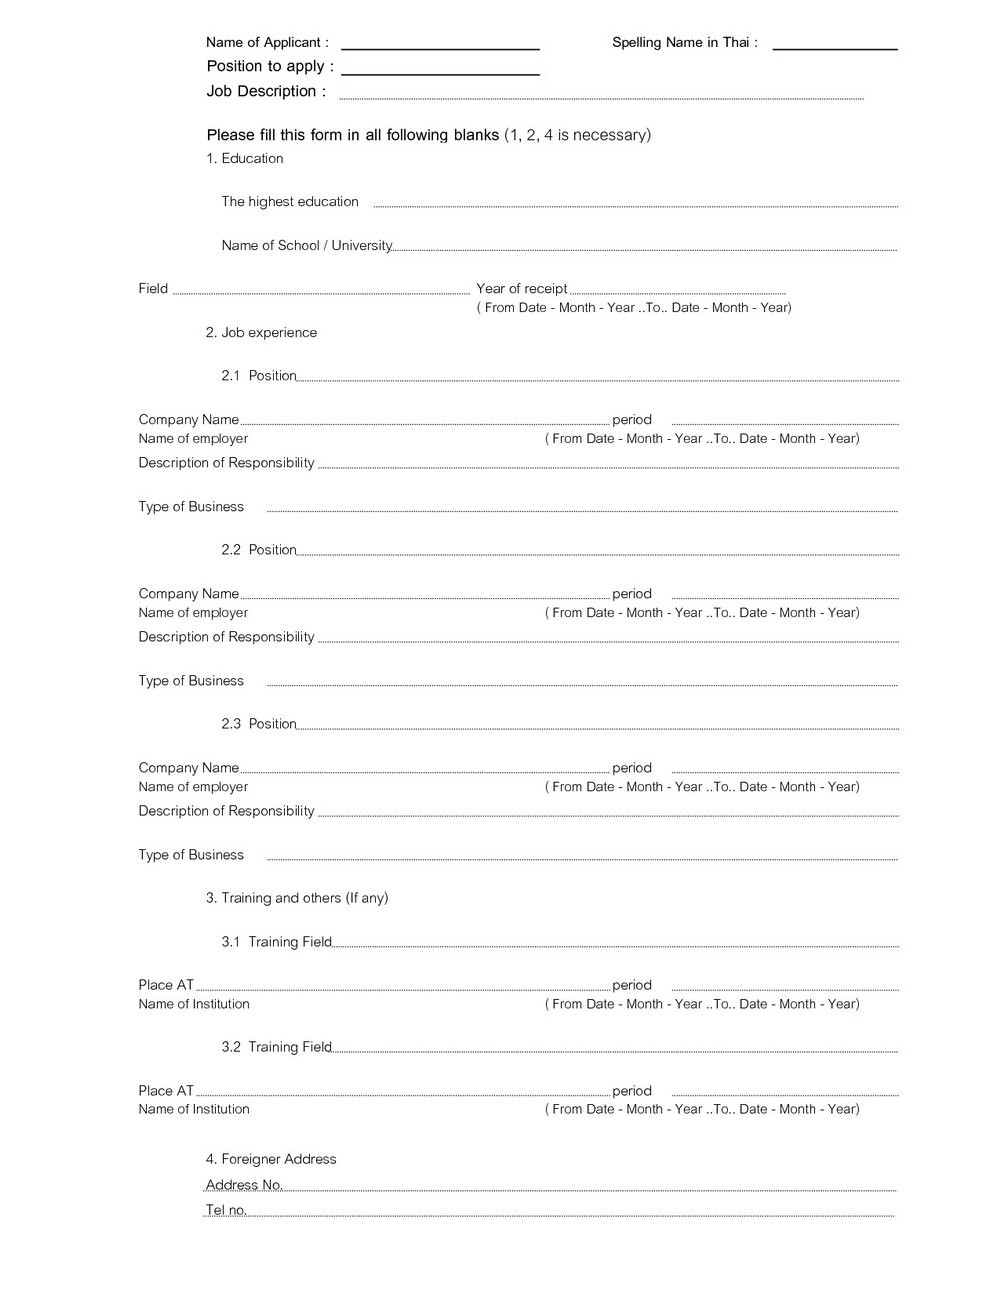 Free Online Resume Templates Printable - Viaweb.co - Free Online Resume Templates Printable